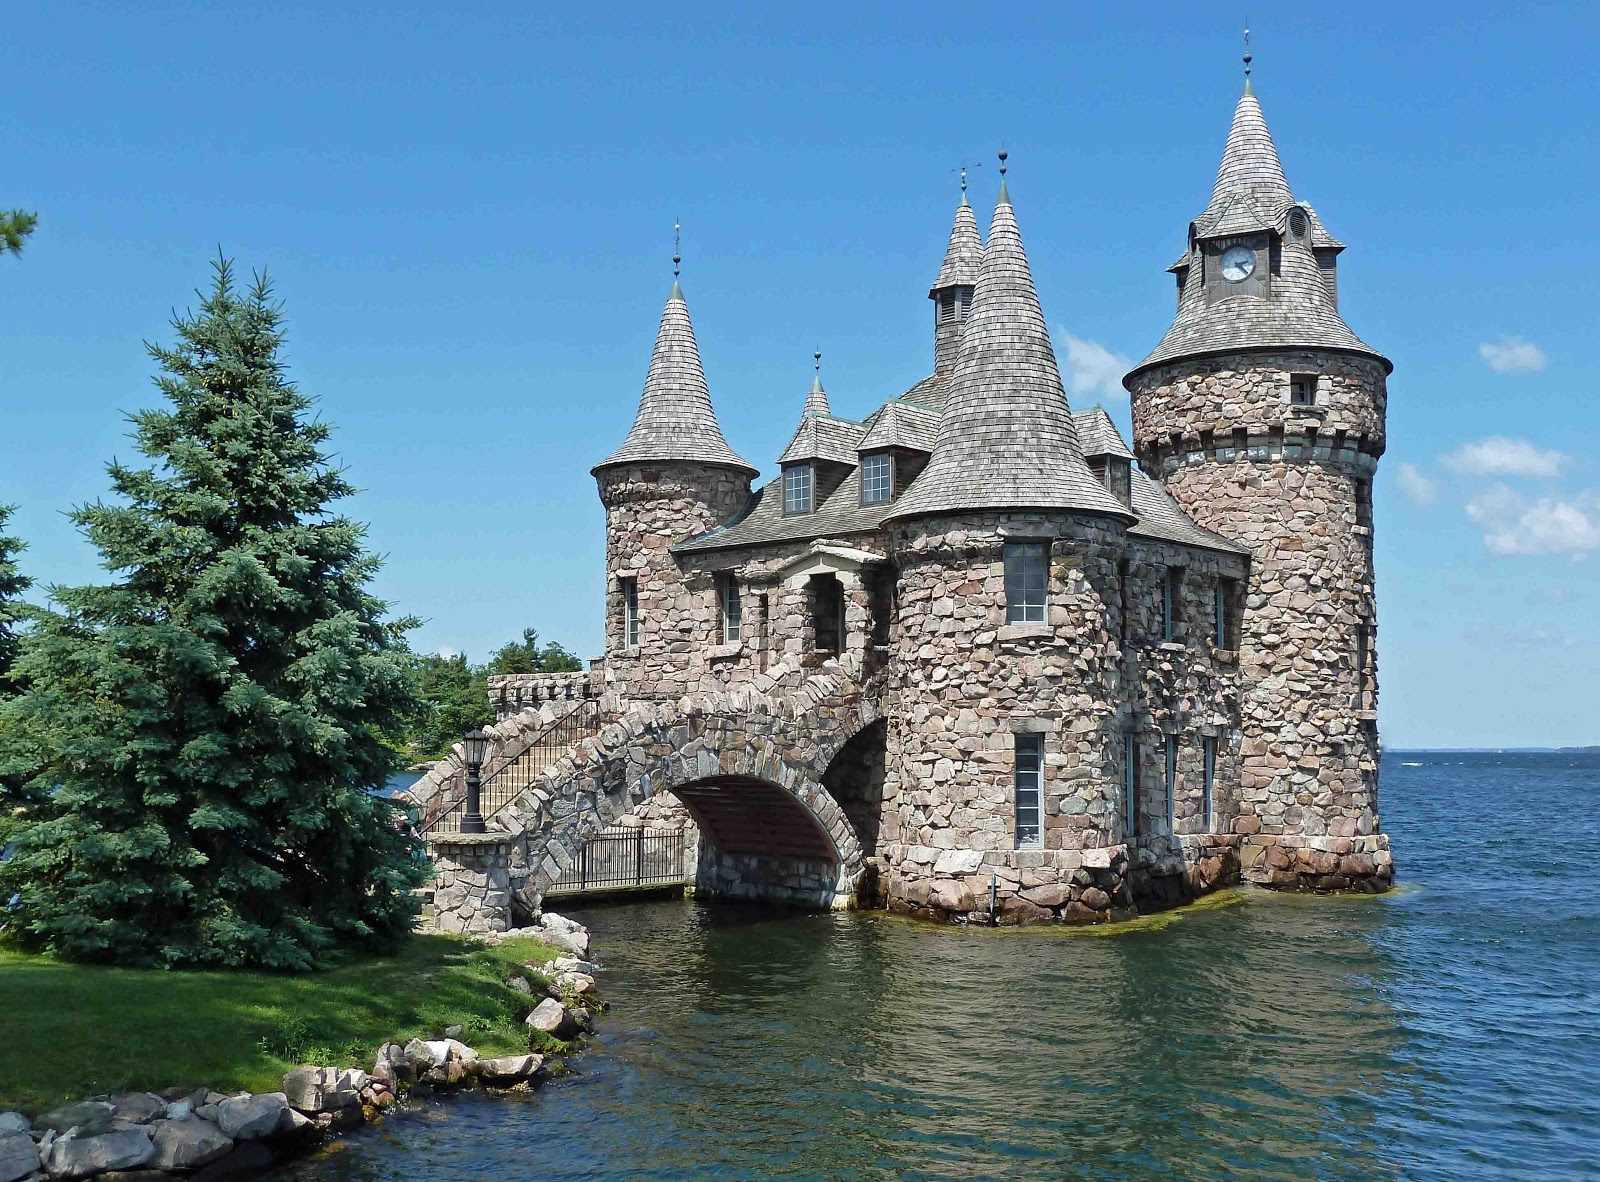 Last dance boldt castle heart island 1000 islands for Mini castle house plans